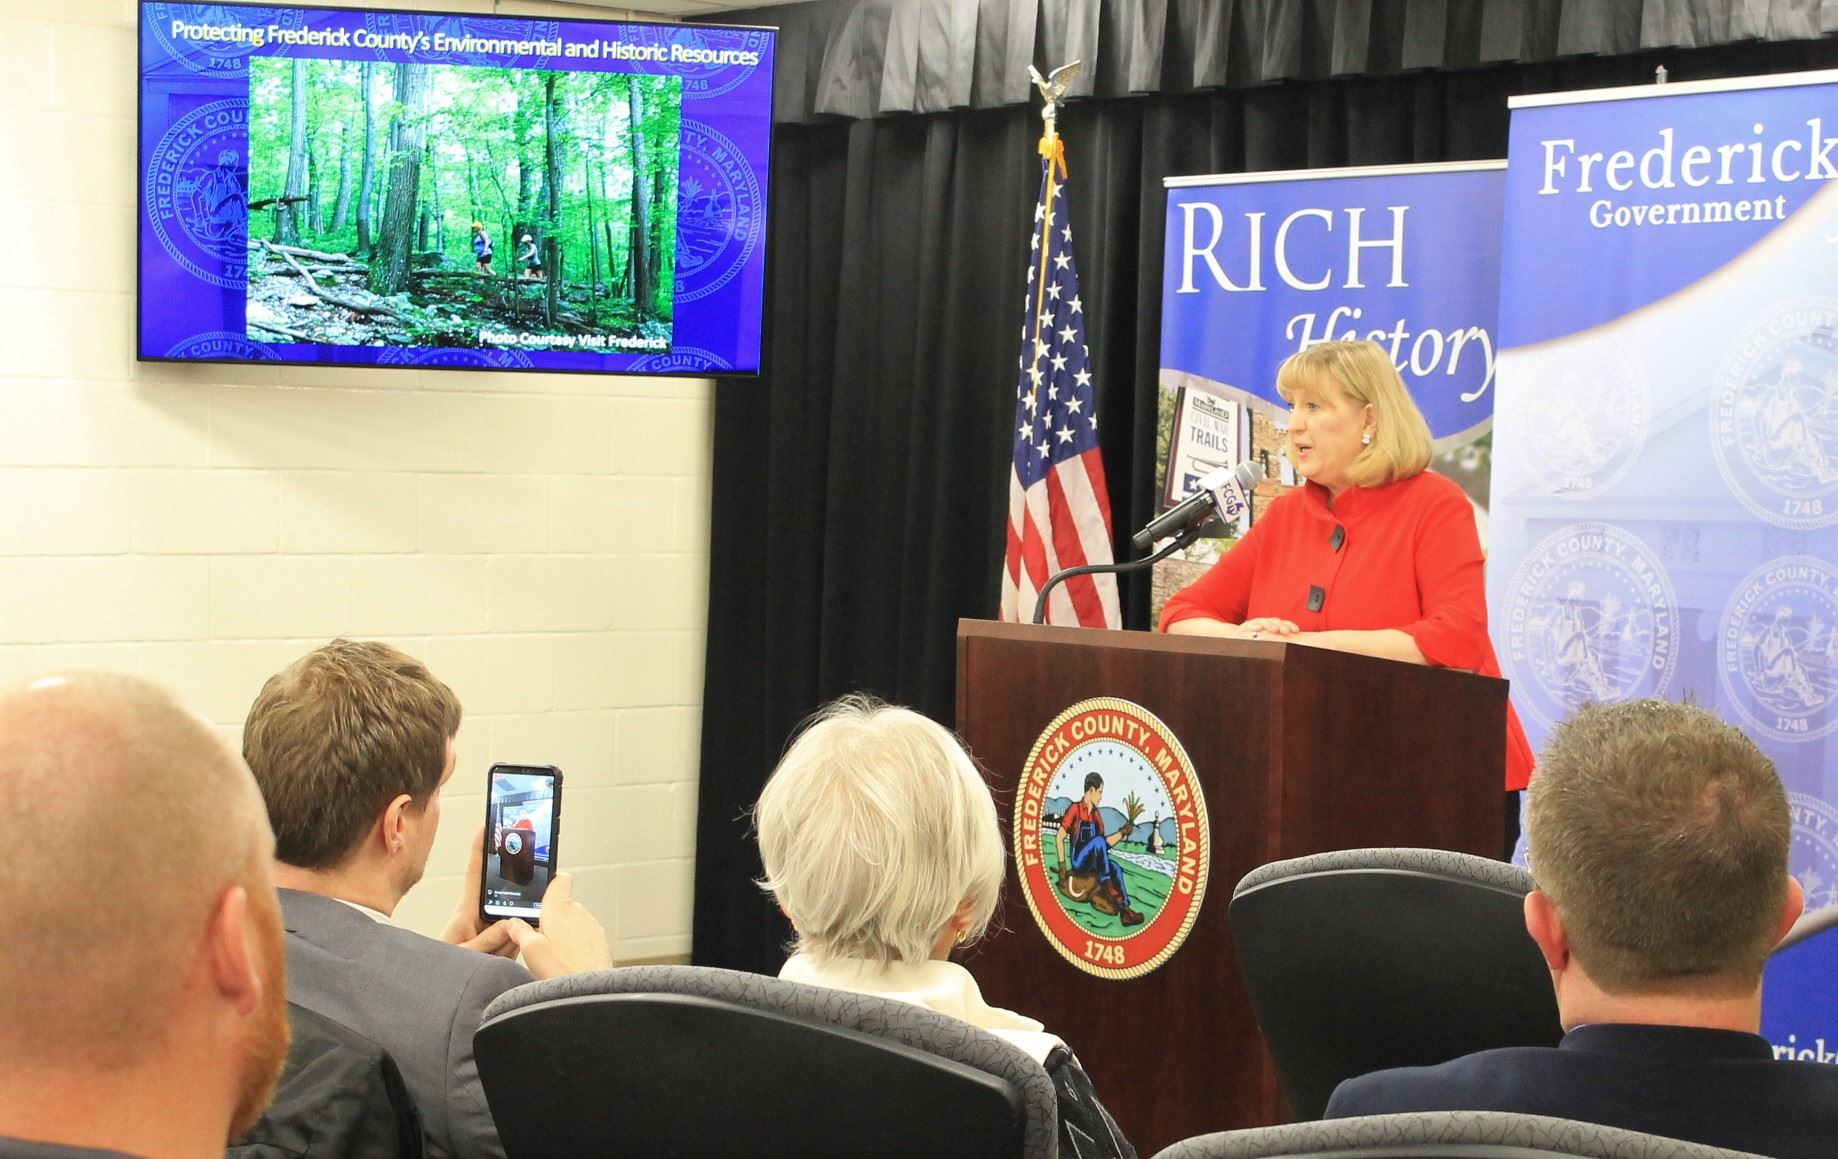 Frederick Unveils Initiatives to Protect Forest Cover, Environmental, Historic Resources